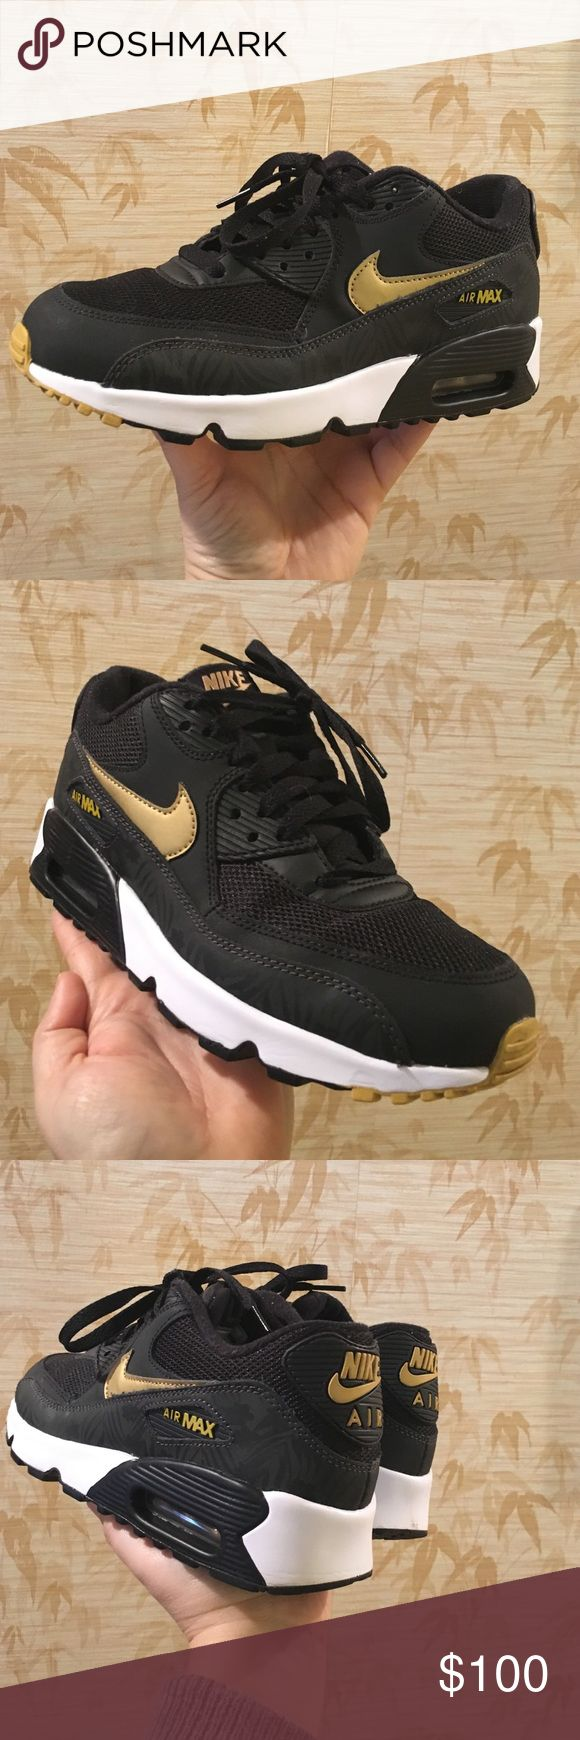 Sold out in stores !!!!  Nike air max Used one day just like new size 8 women's 6 1/2 boys true to size Nike Shoes Athletic Shoes